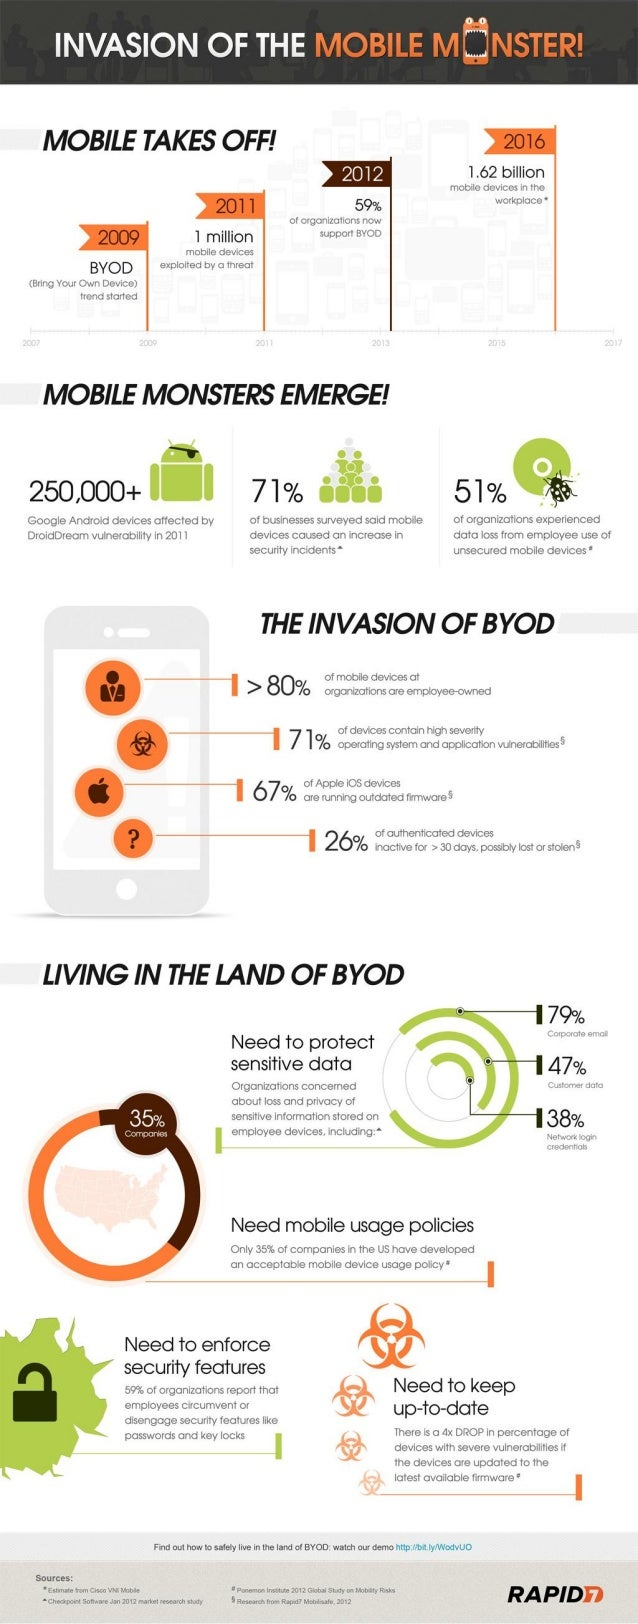 Growth of BYOD and Mobile Security